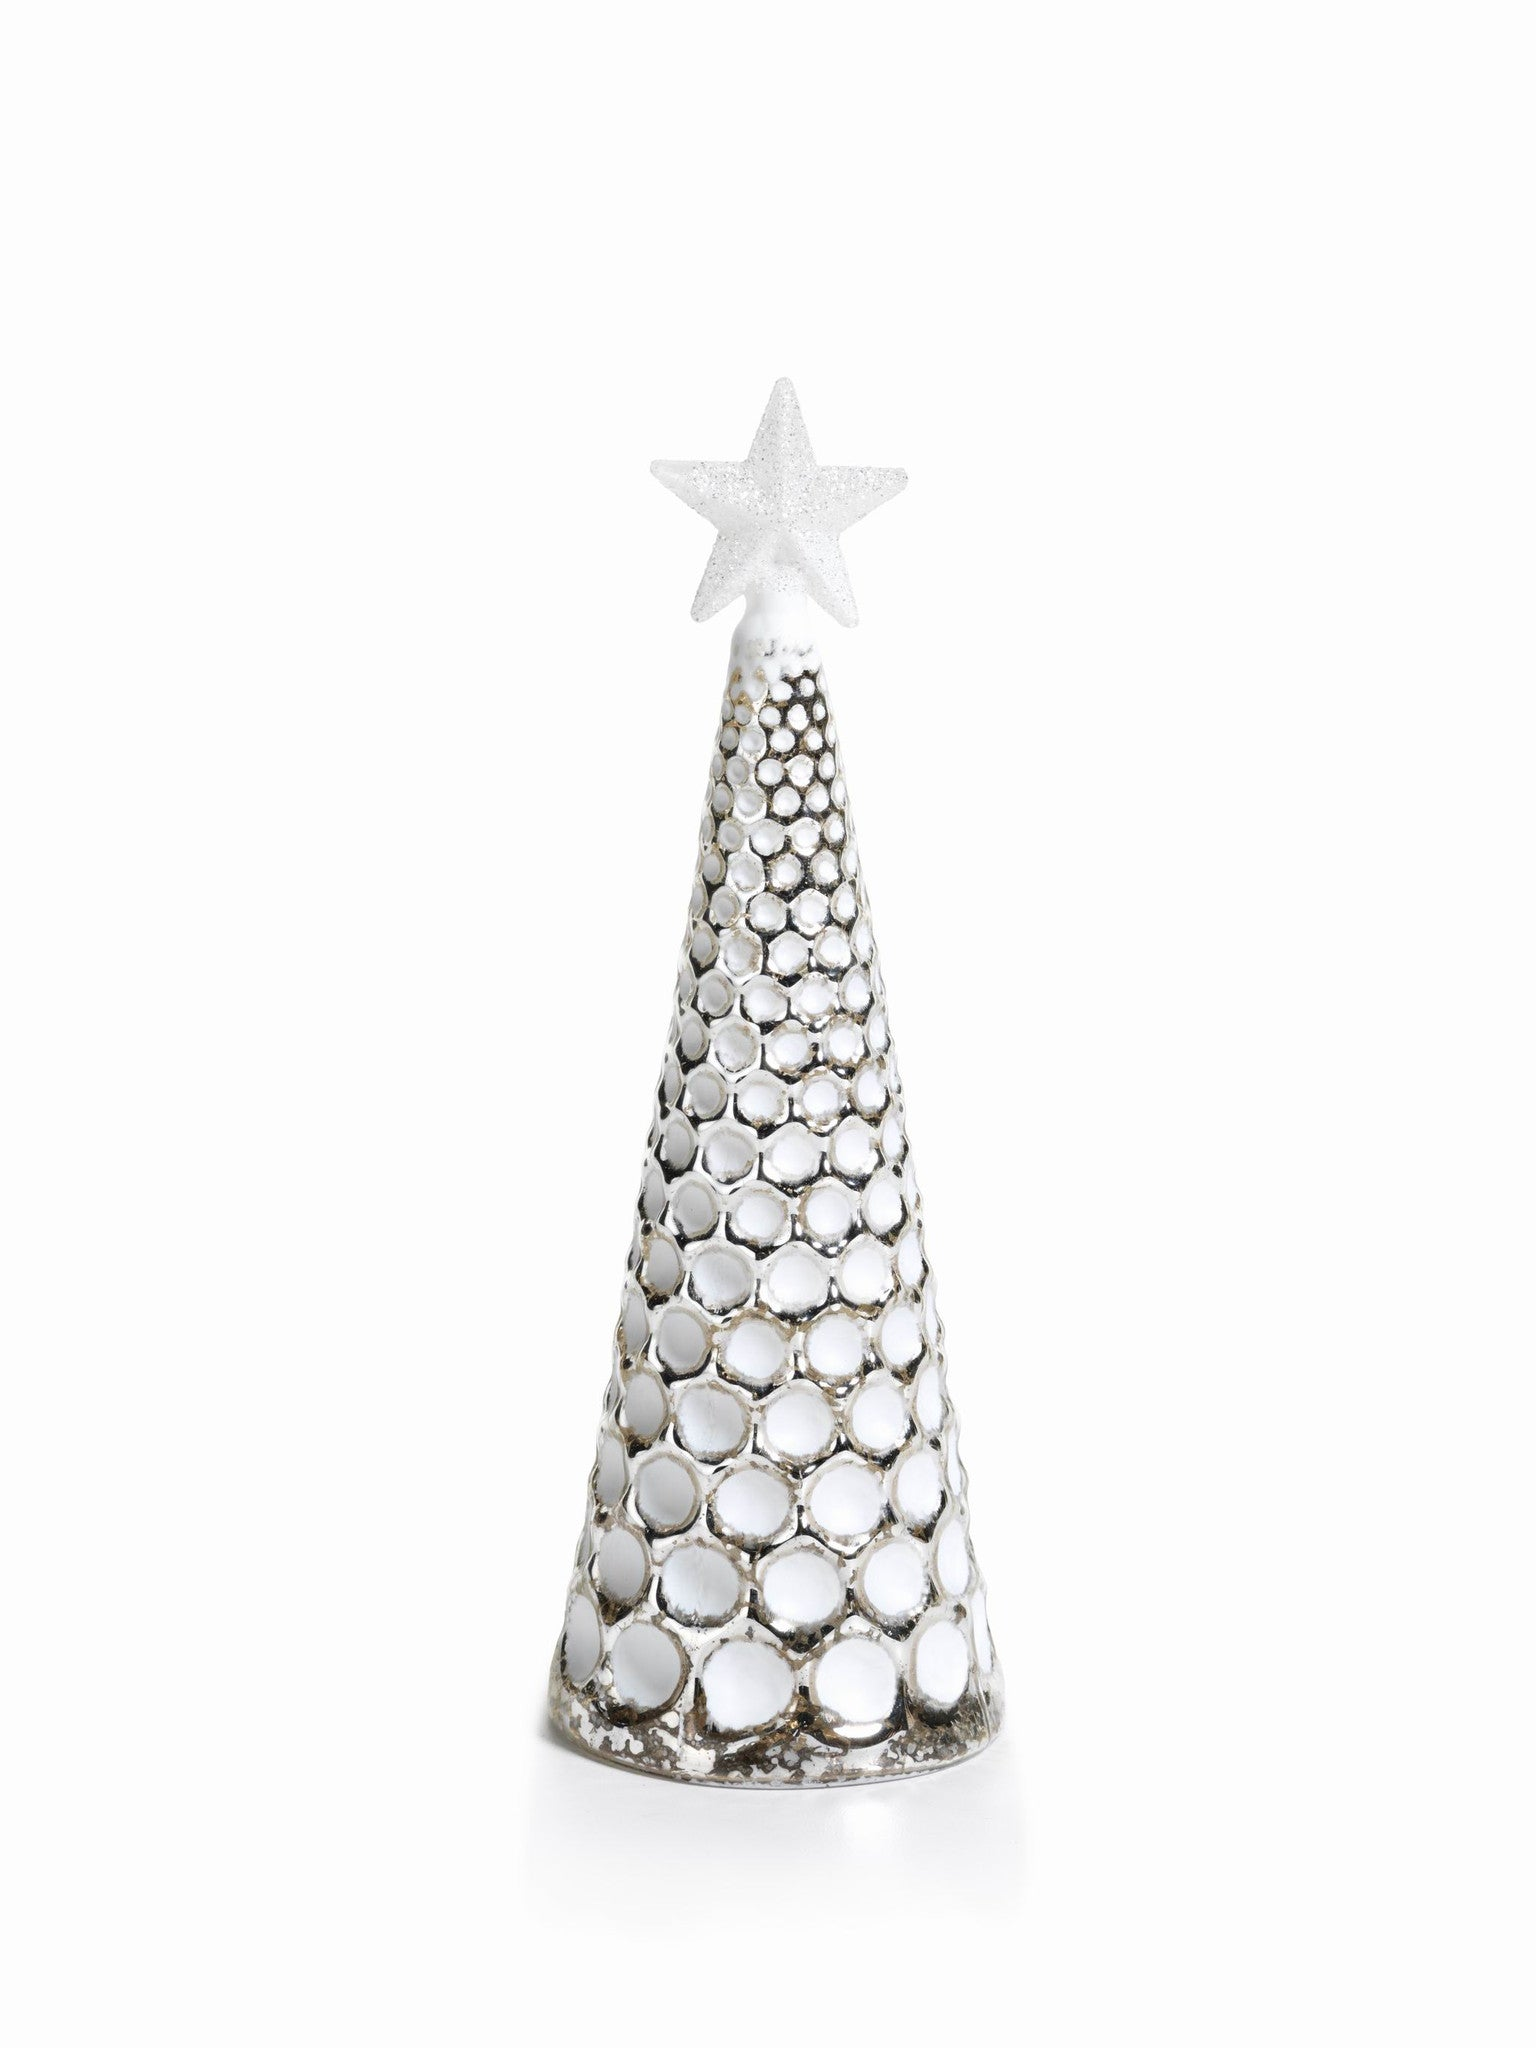 LED Glass Decorative Tree - Silver - Set of 6 - Large / Dimple Cut - CARLYLE AVENUE - 17